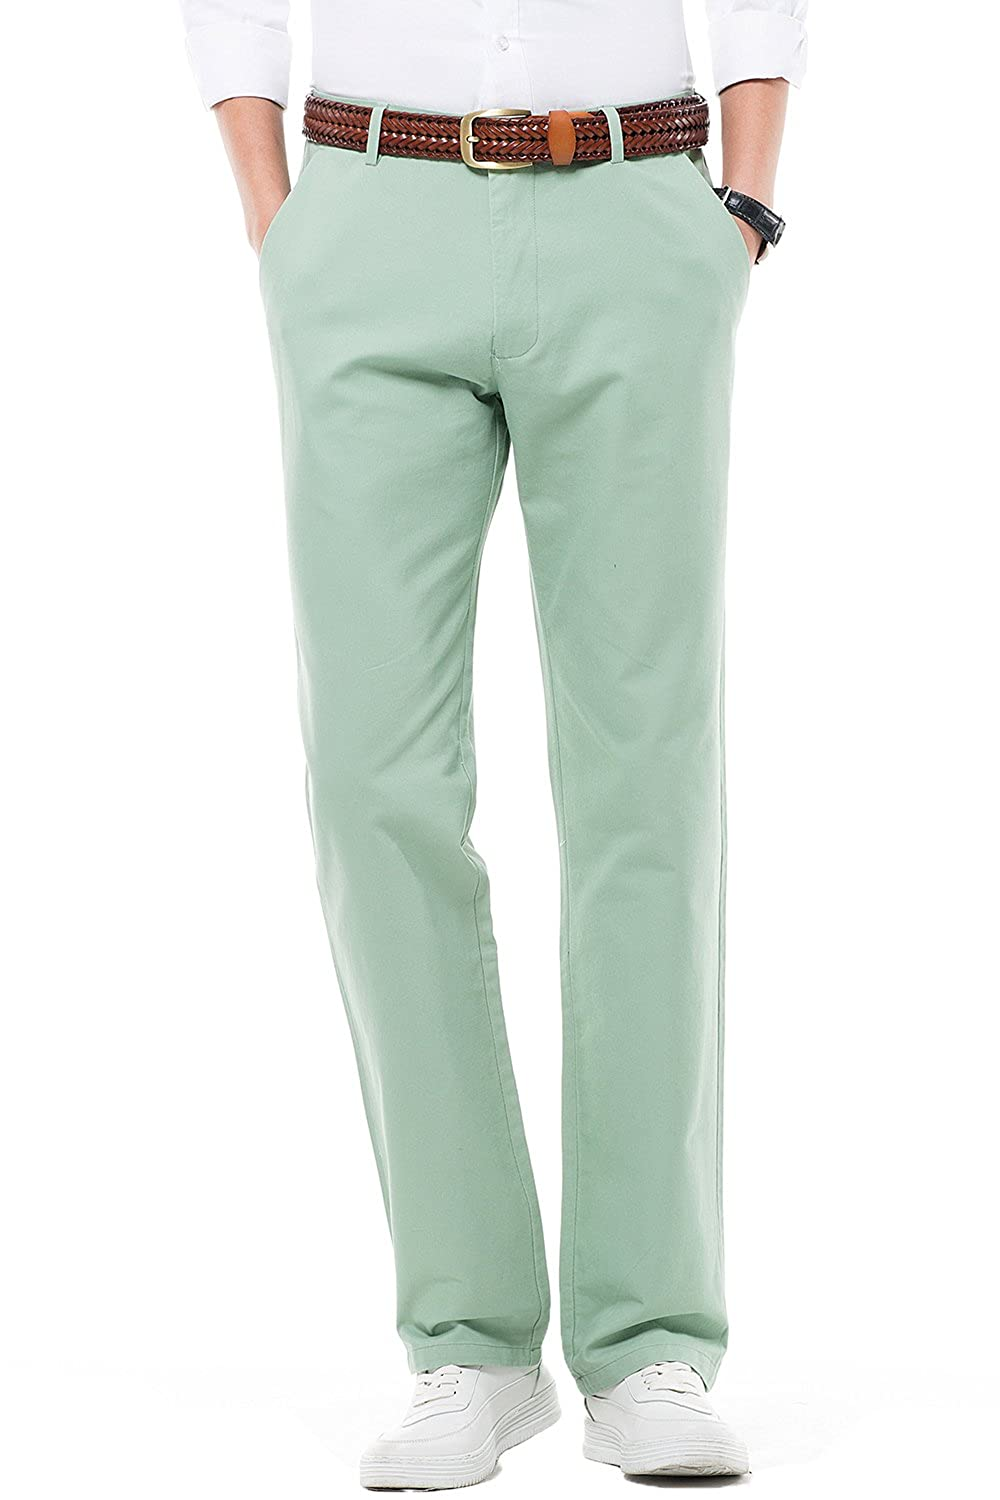 FLY HAWK Mens Stretchy Regular Fit Flat Front Casual Pants Straight Leg Work Pants Dress Trousers, 18 Colors for Choice HM03131-HRS